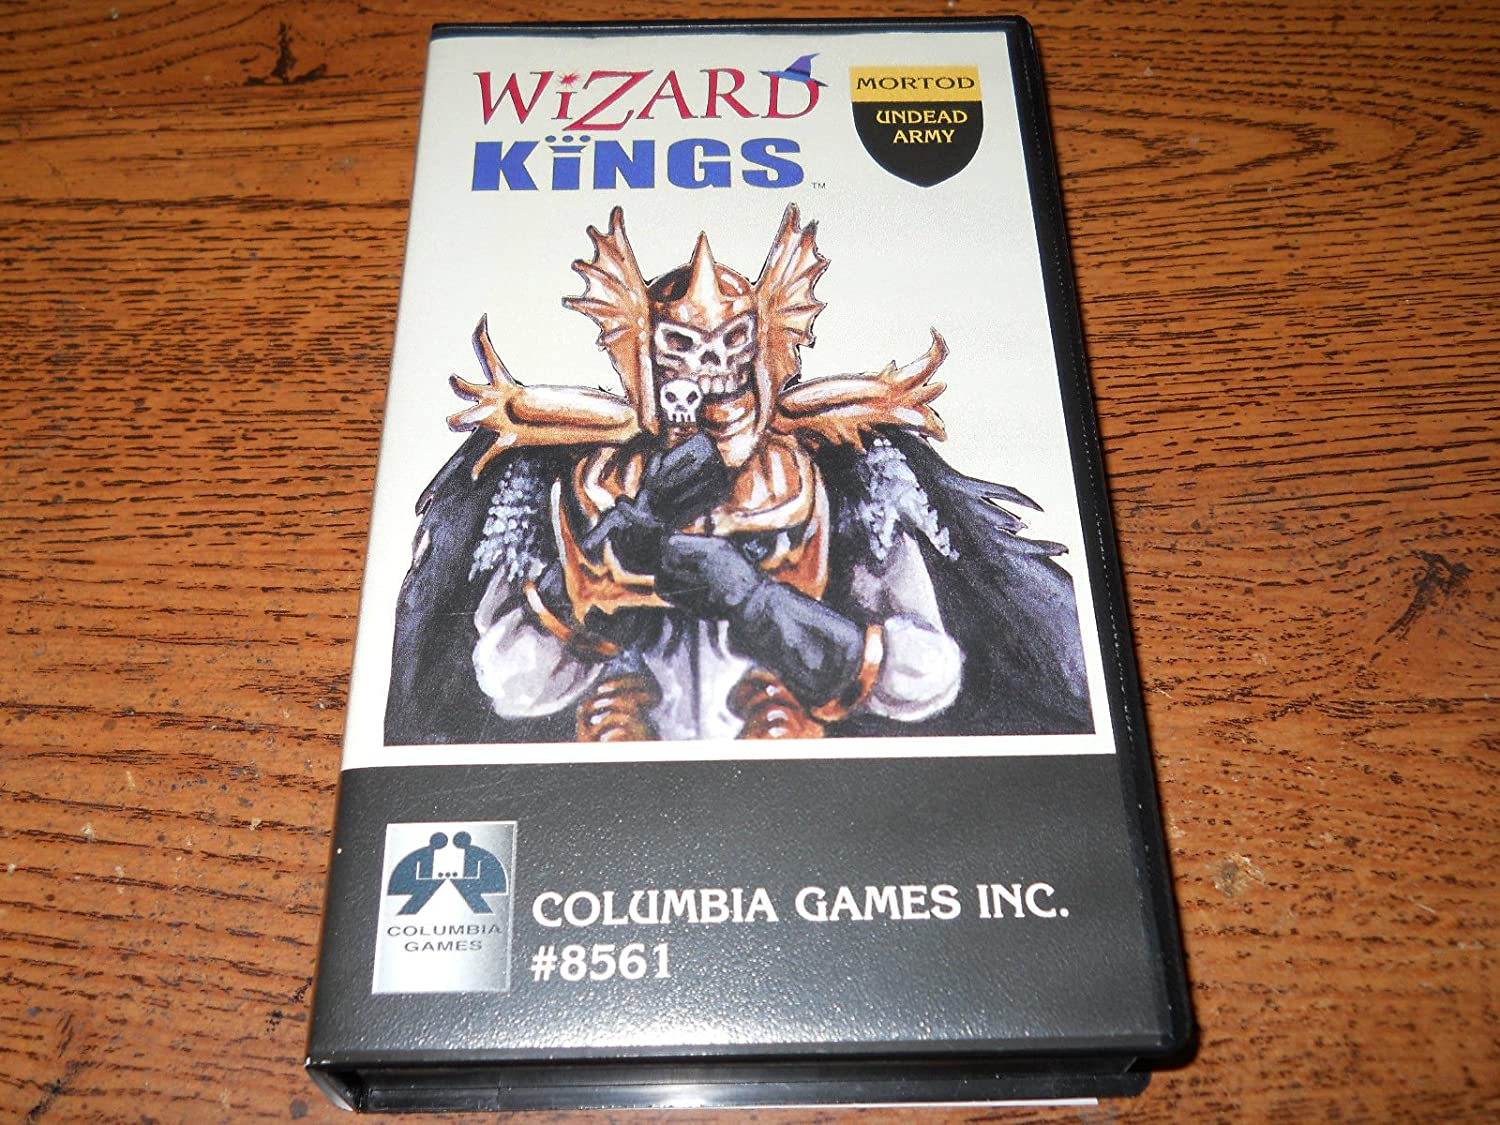 Wizard Kings Mortod Undead Army Columbia Games Inc